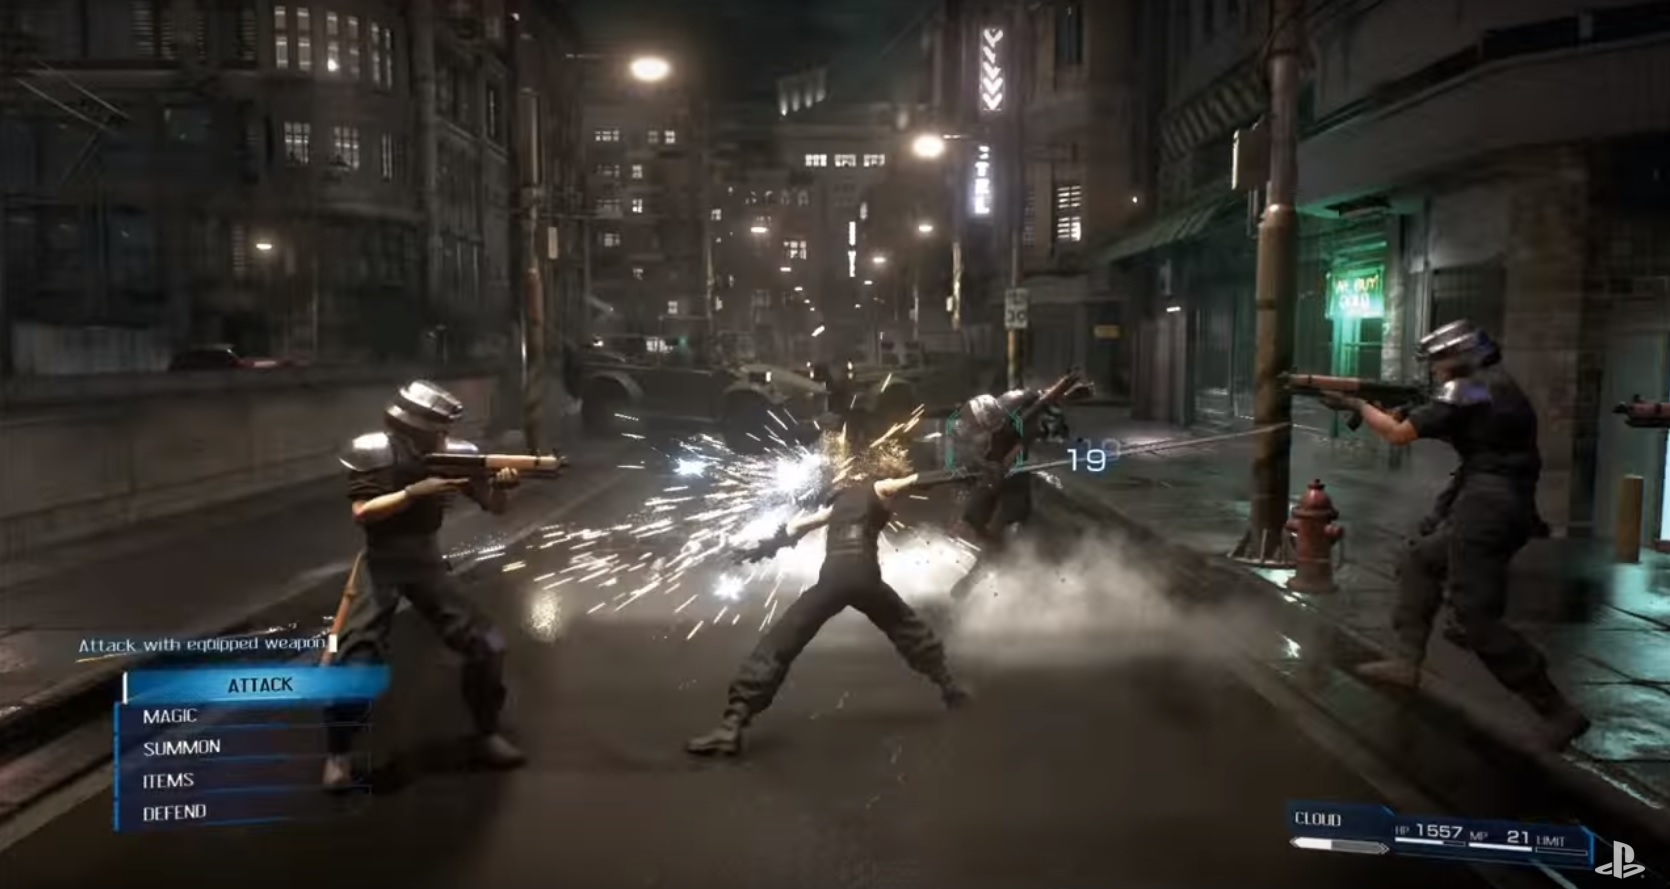 final-fantasy-vii-remake-gameplay-screenshot-attack-equipped-weapon-ps4